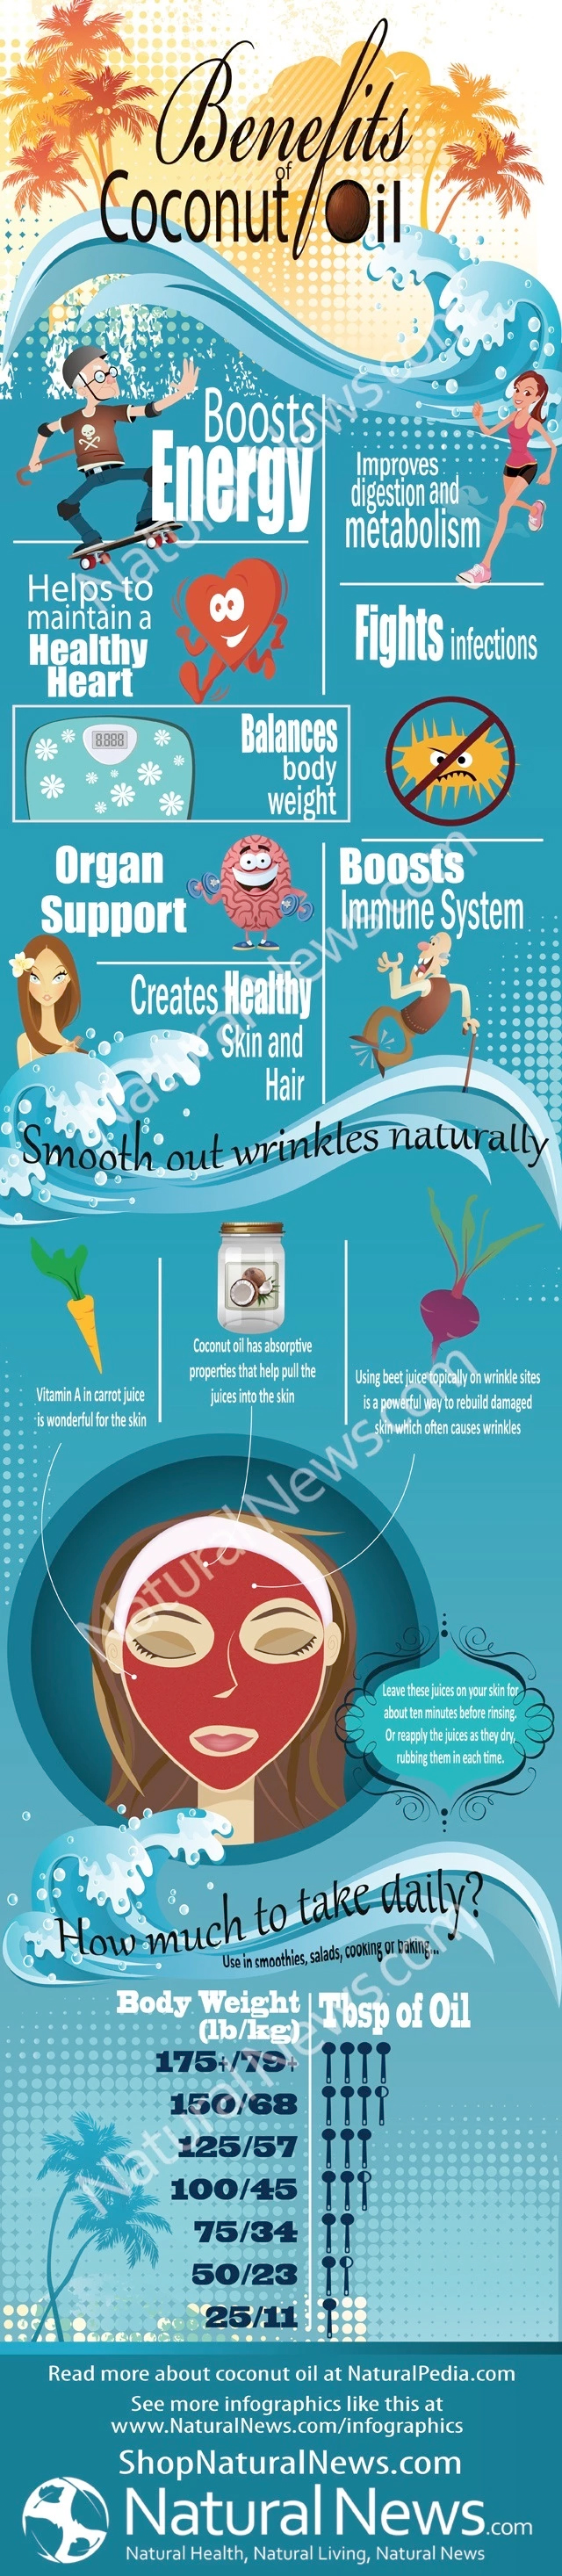 Uses and Benefits Of Coconut Oil - Infographic